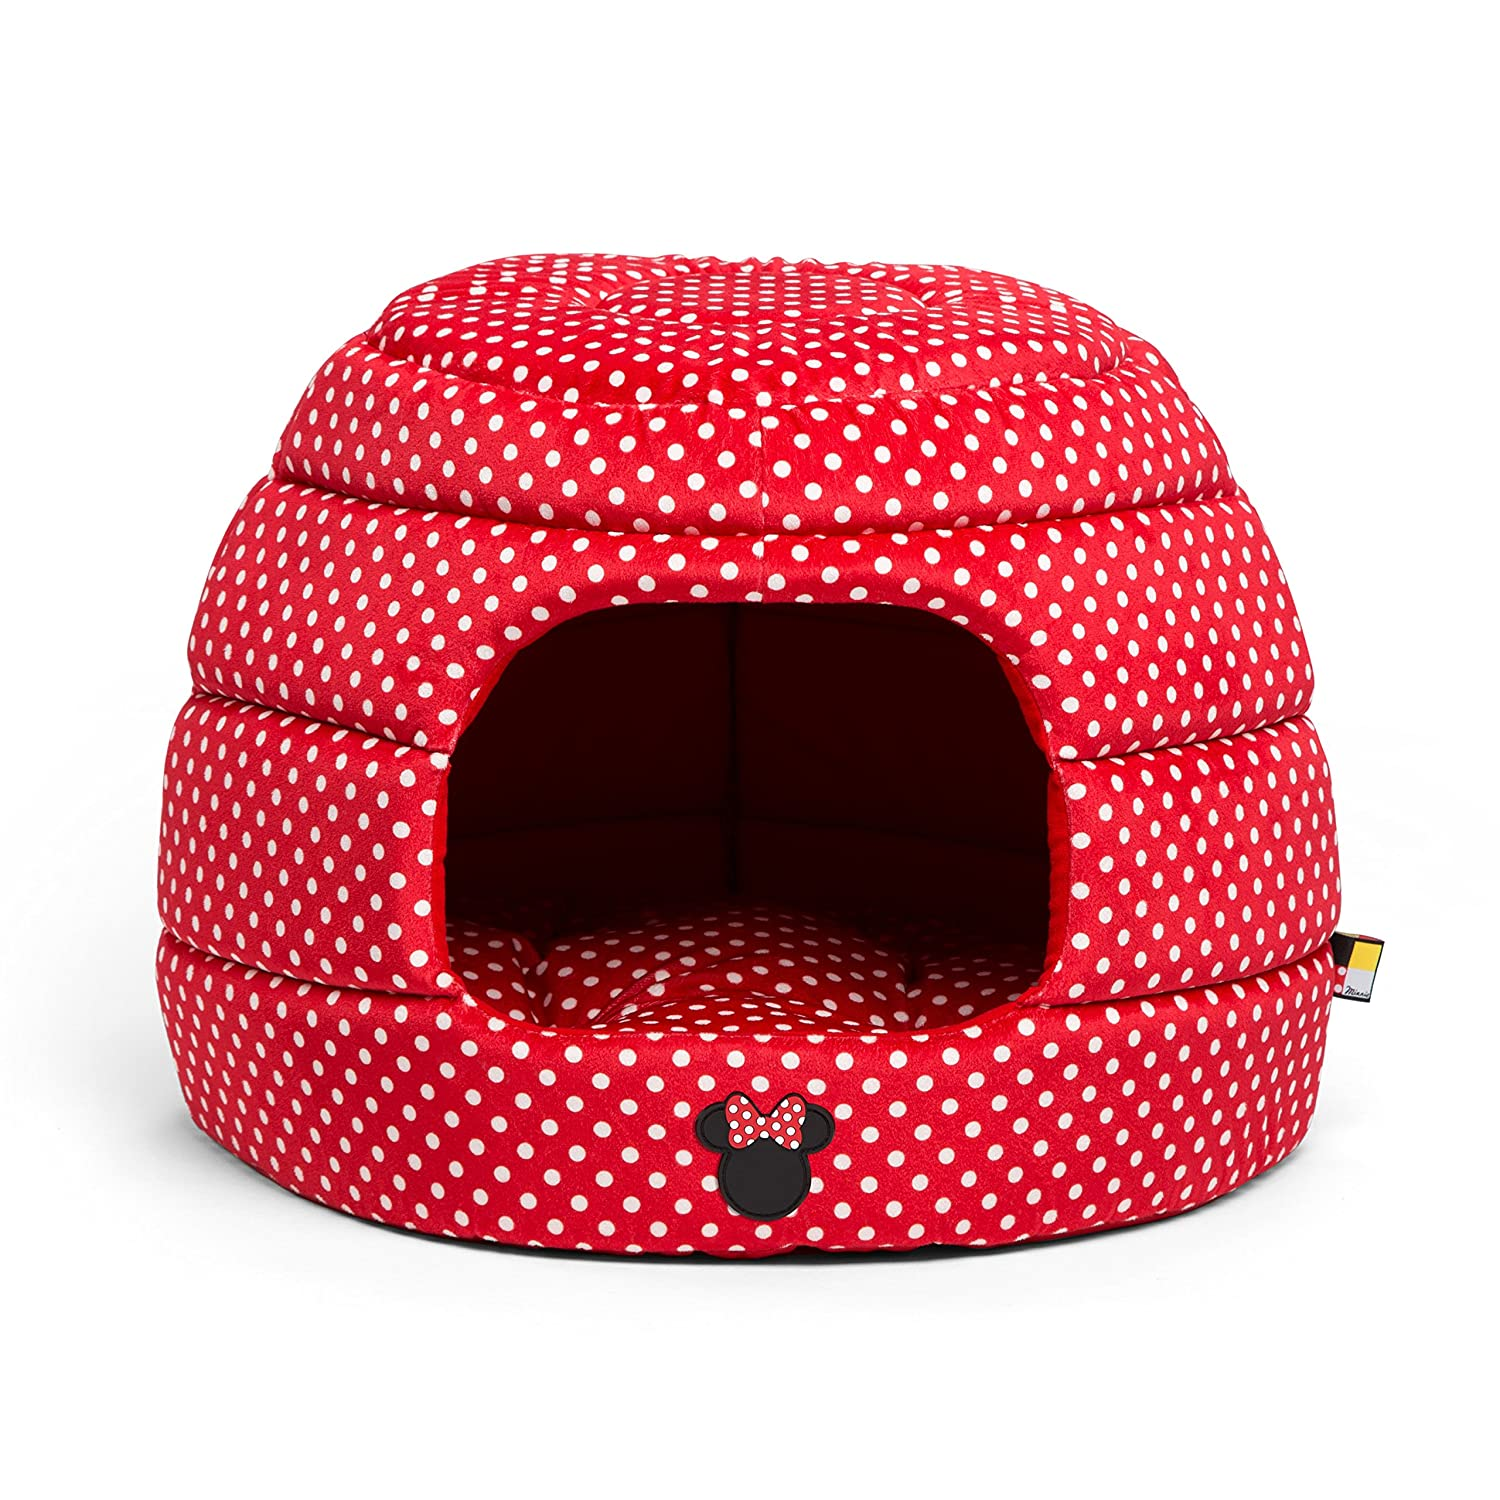 amazoncom disney minnie mouse 2in1 honeycomb hut cuddler in minnie dots red standard dog bedcat bed pet supplies